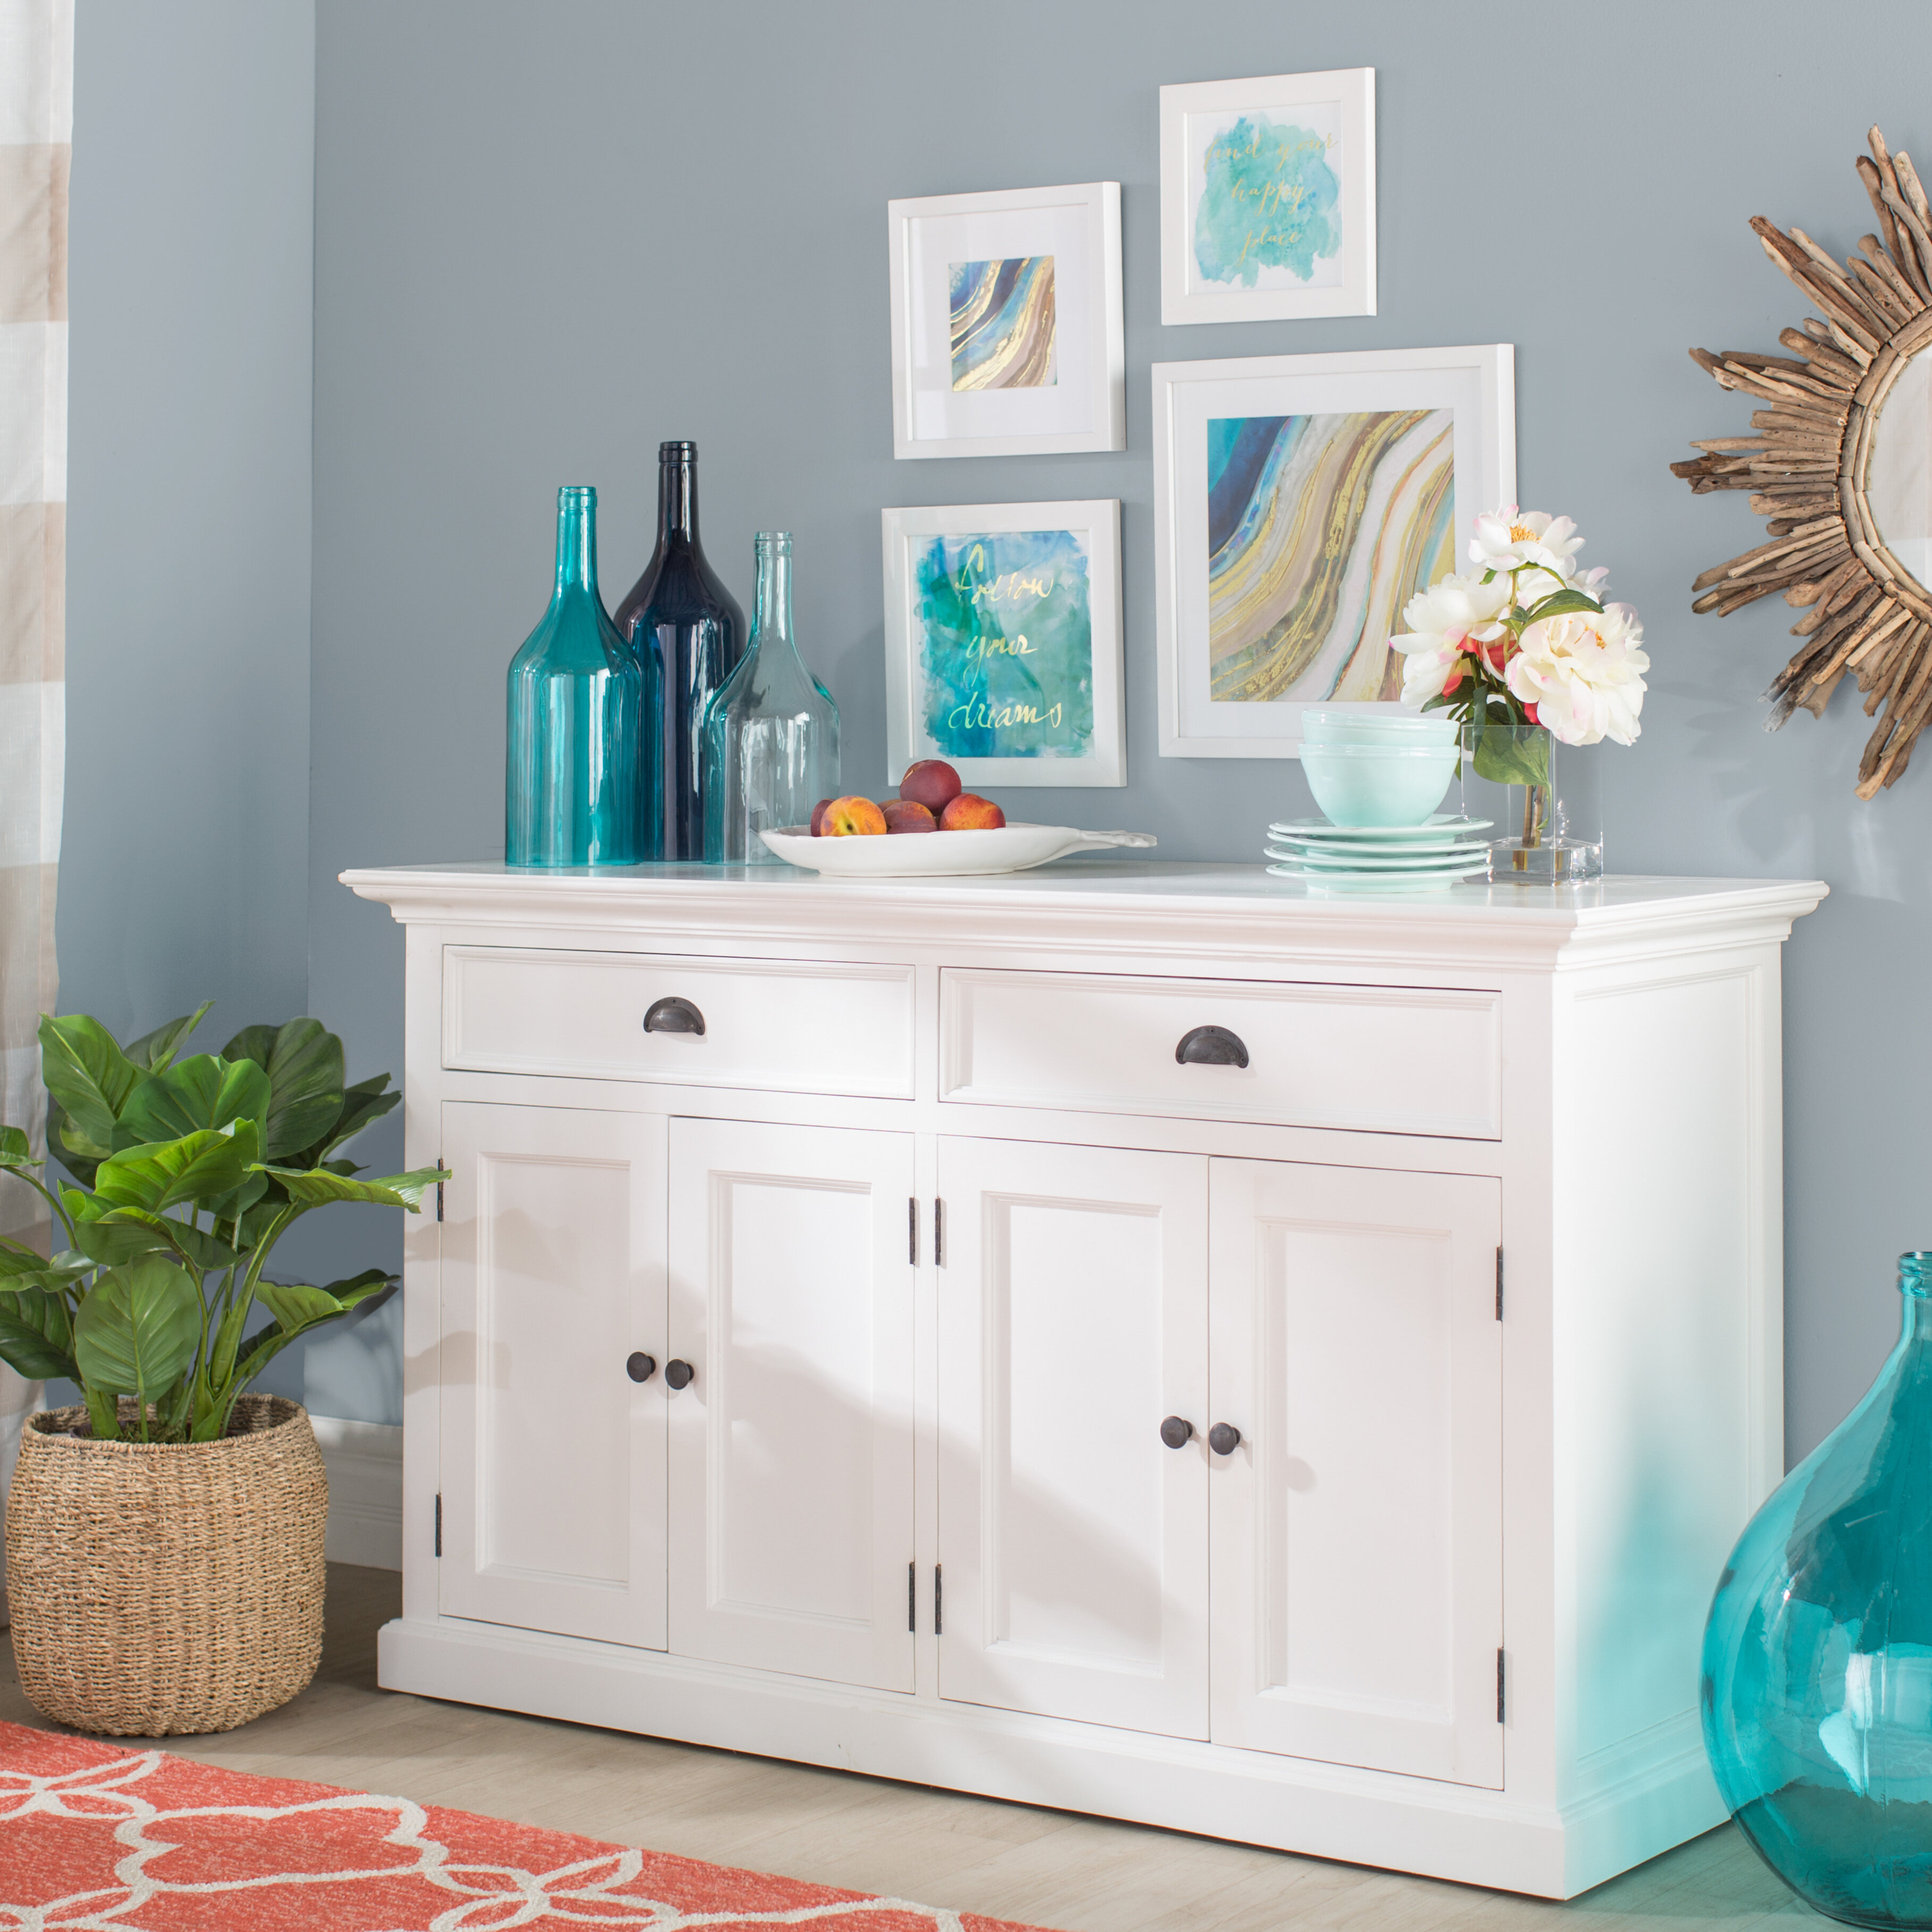 Choose Sideboards And Buffets, What Size Sideboard For Dining Room